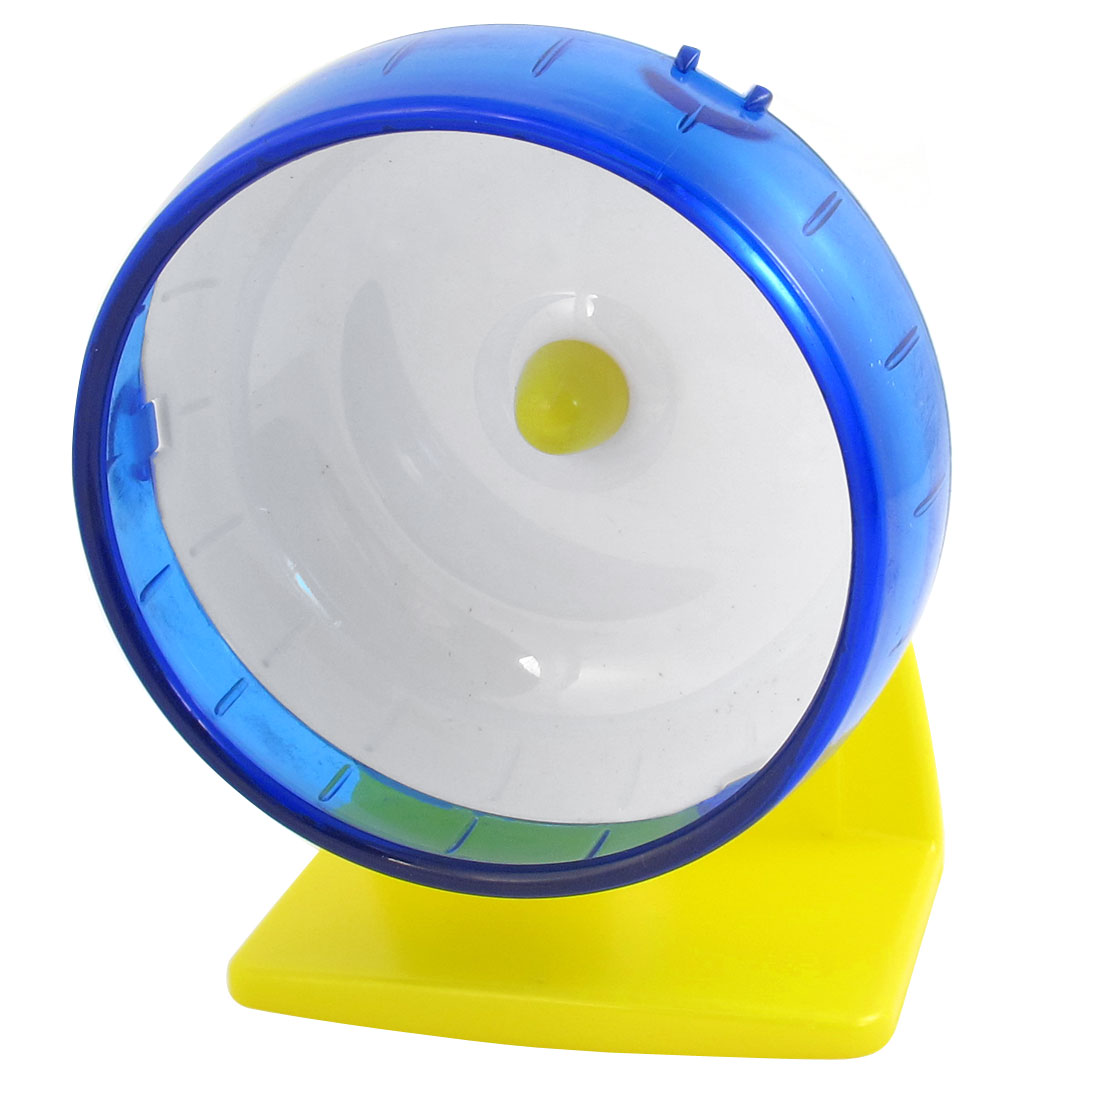 Mini Hamster Gerbil Mice Mouse Fitness Exercise Blue White Fun Toy Ball Wheel Cage